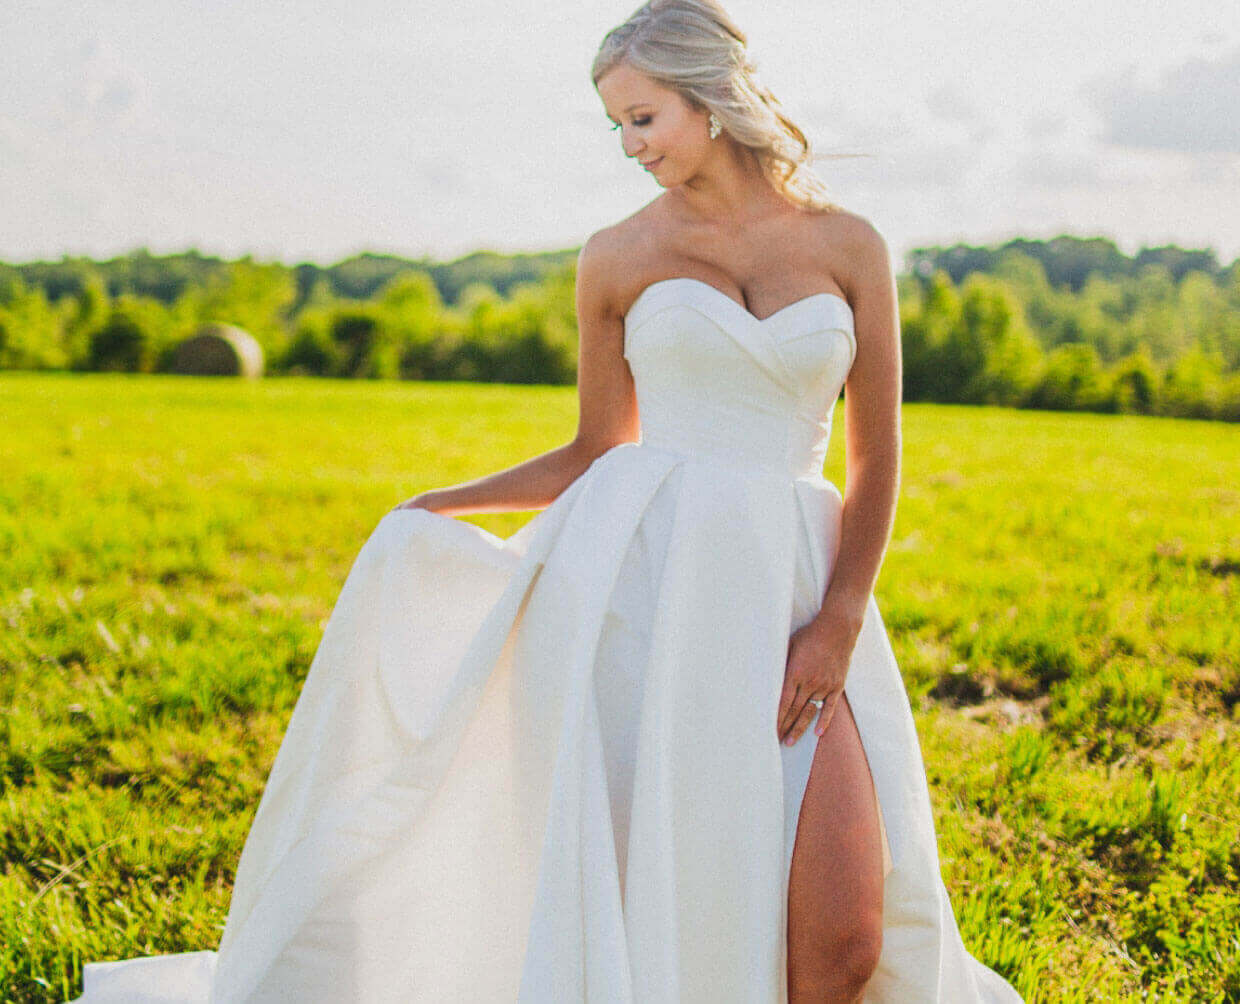 Photo of bride wearing a white sleeveless gown